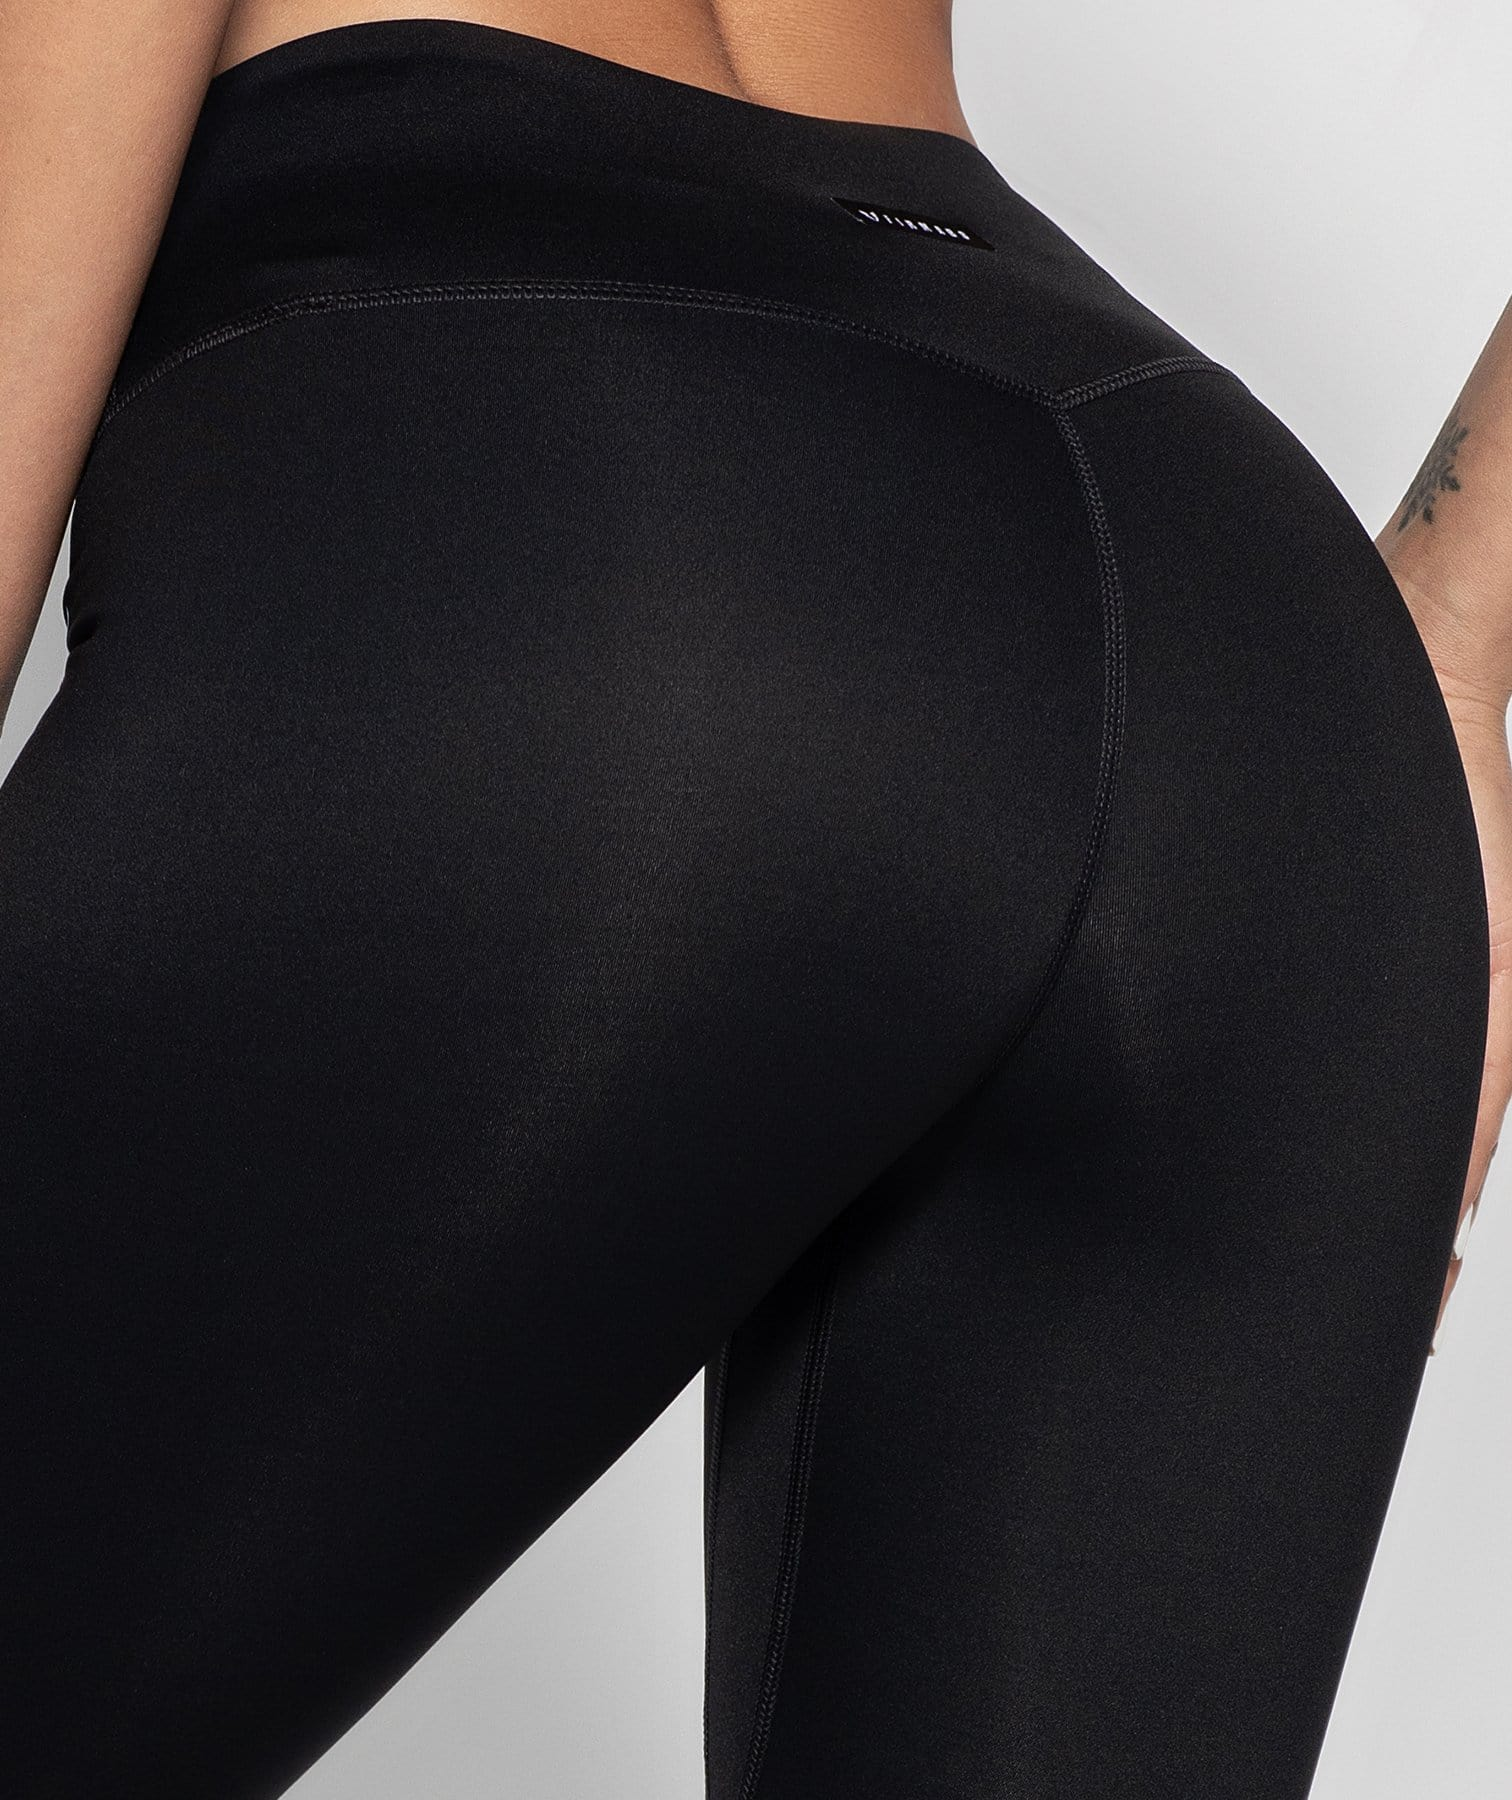 X-power Cropped Leggings - Black - Firm Abs Fitness